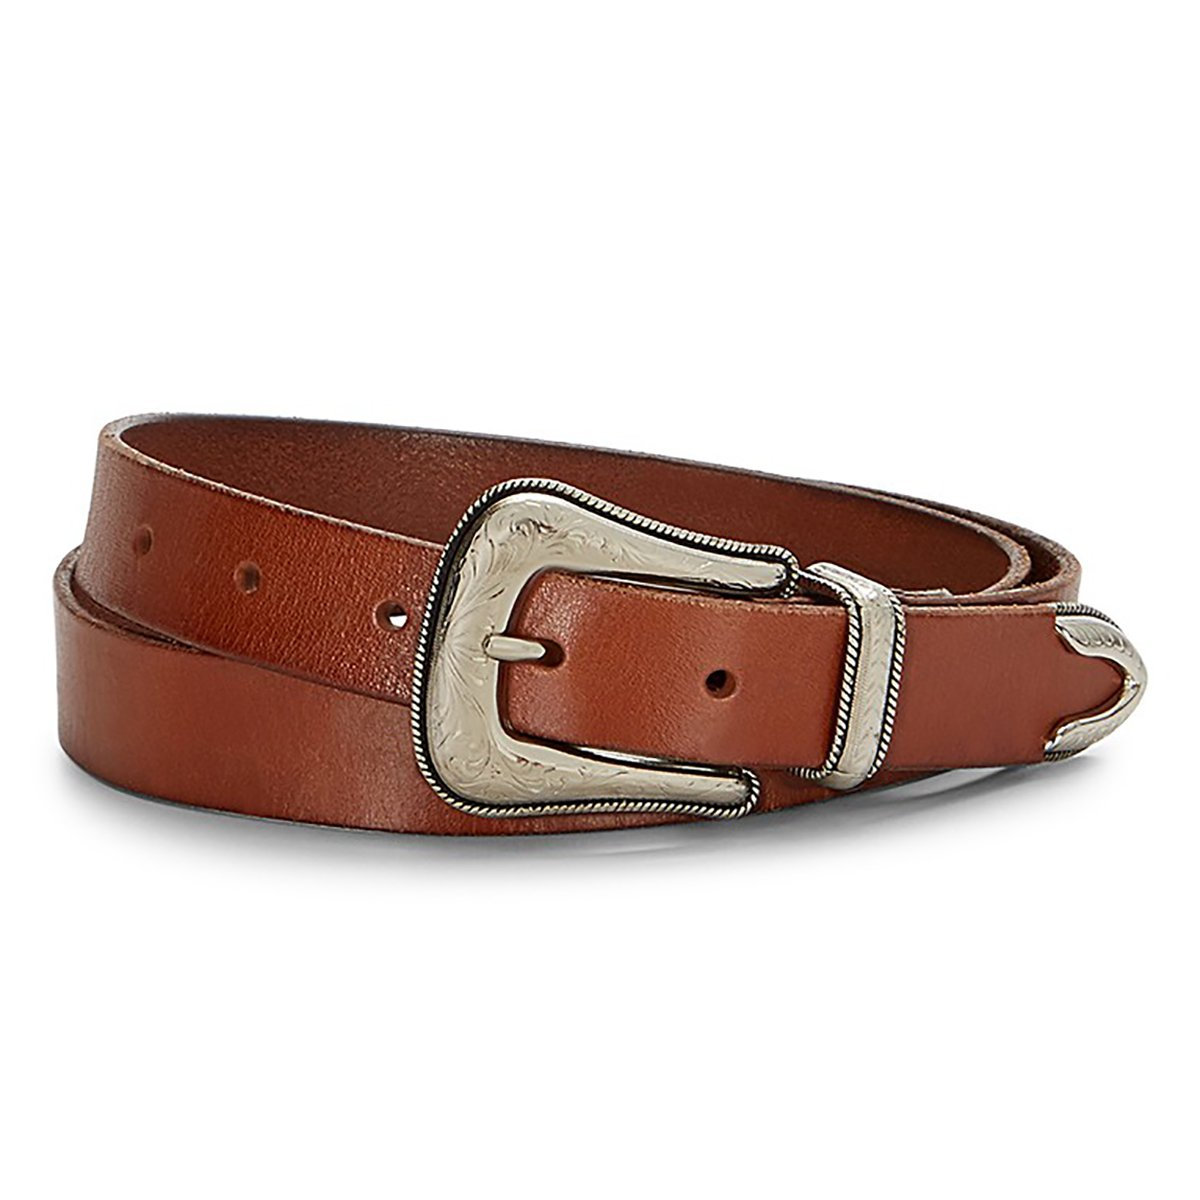 Rebecca Minkoff Women's Flat Strap 25mm Leather Belt, Brown (Large)